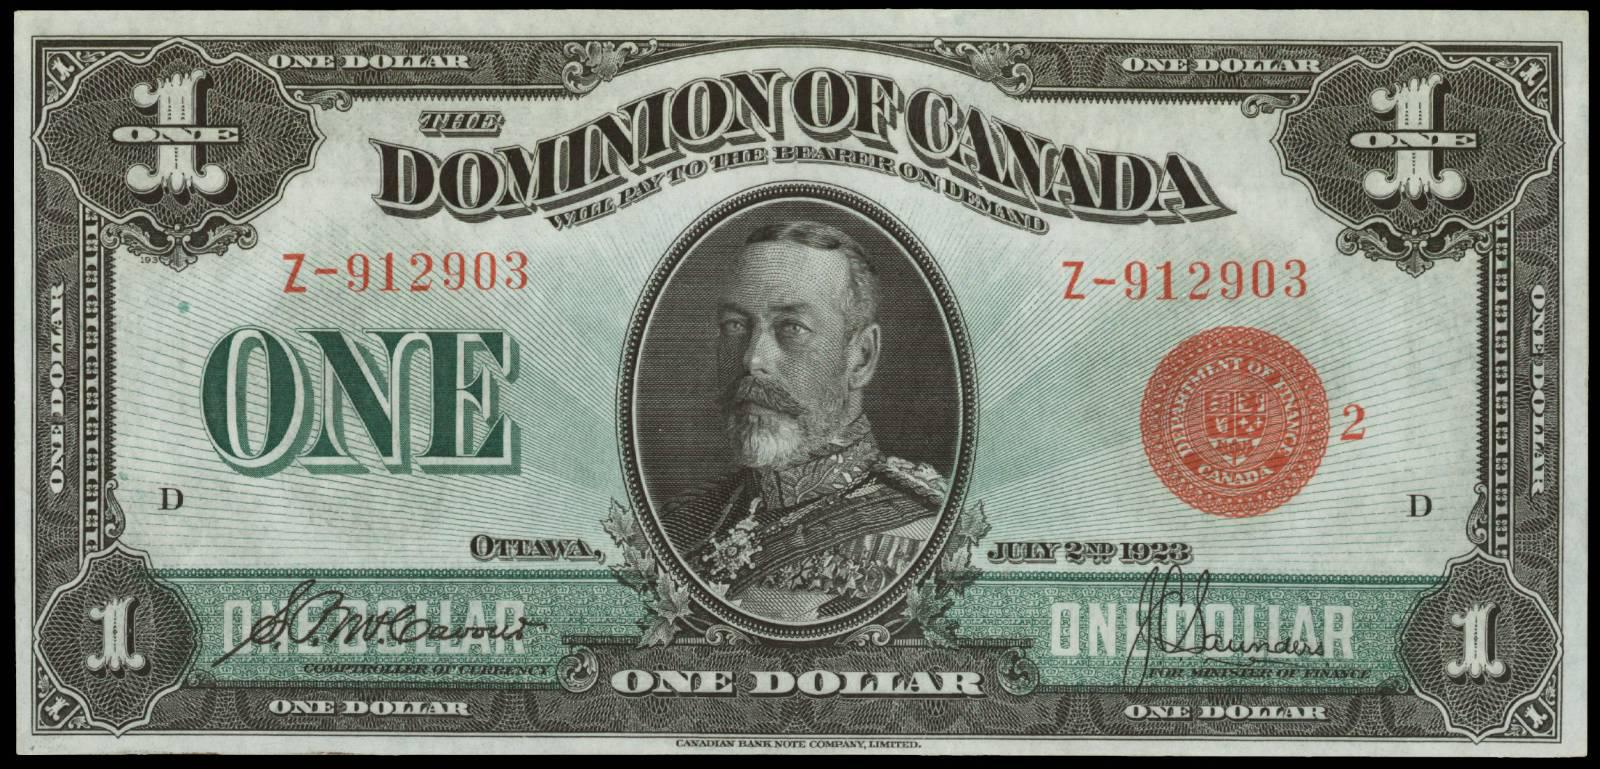 Value Of July 2nd 1923 1 Bill From The Dominion Of Canada